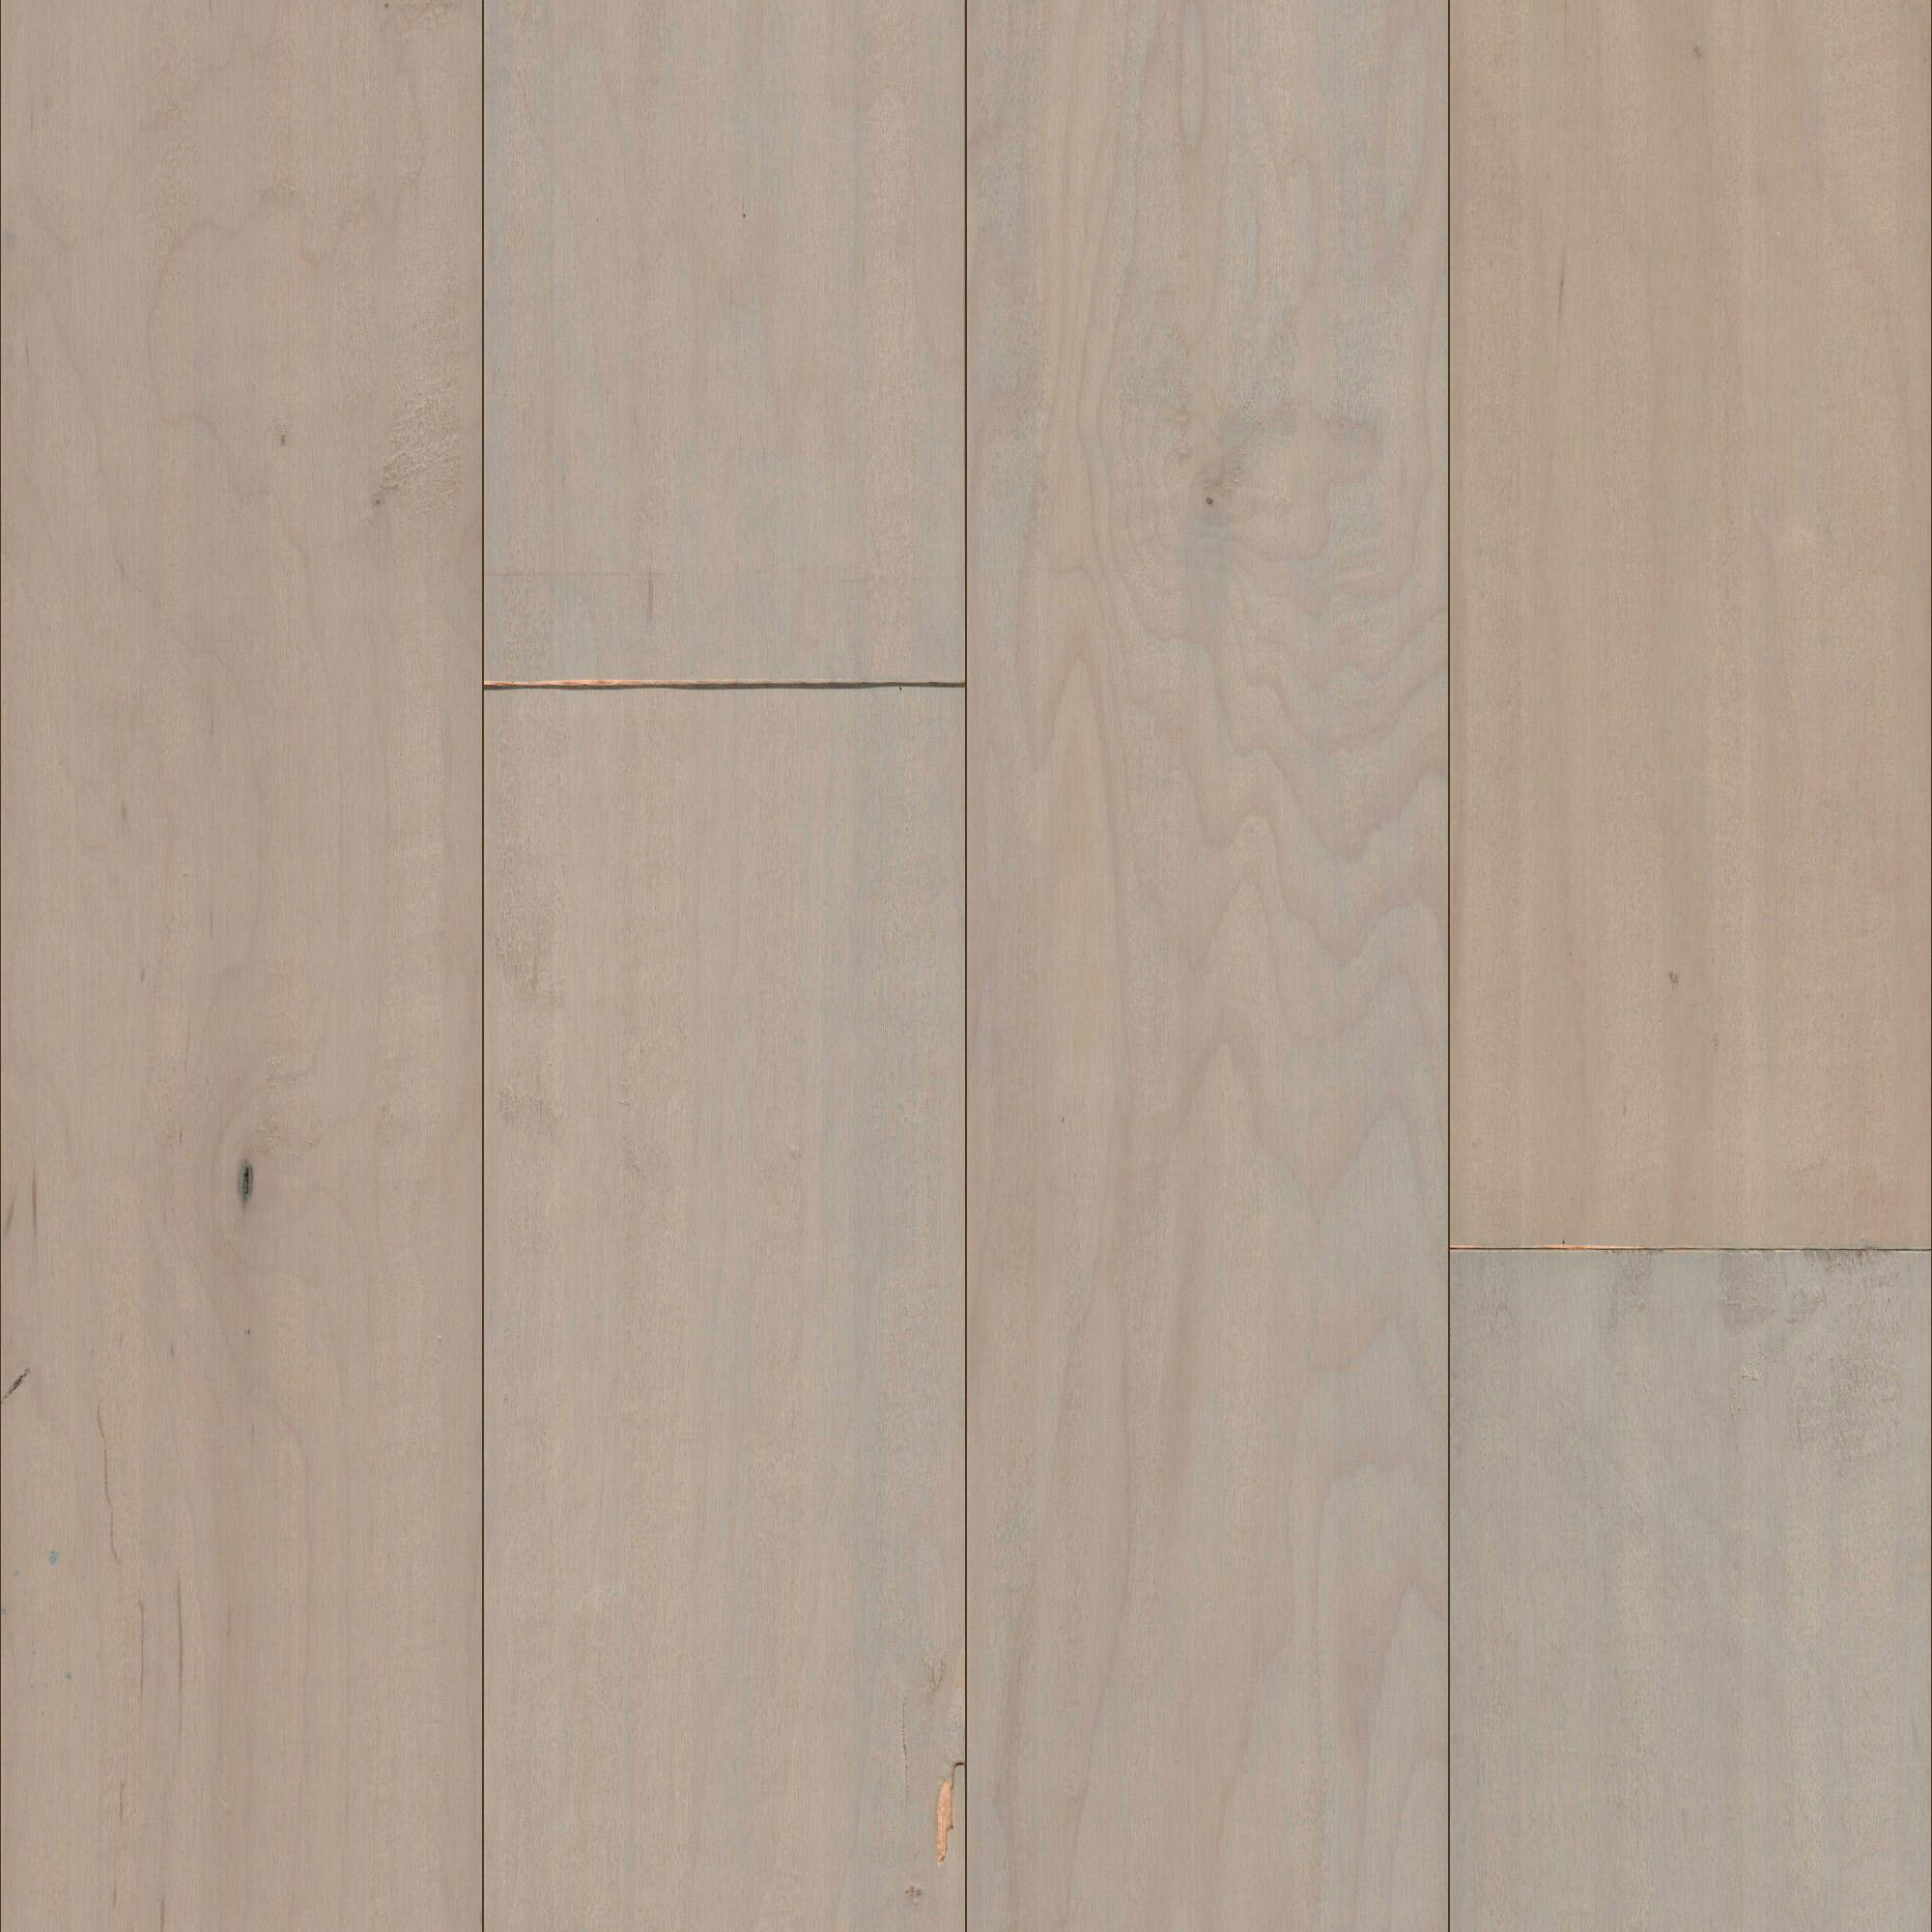 how to replace engineered hardwood floor planks of mullican lincolnshire sculpted maple frost 5 engineered hardwood with mullican lincolnshire sculpted maple frost 5 engineered hardwood flooring